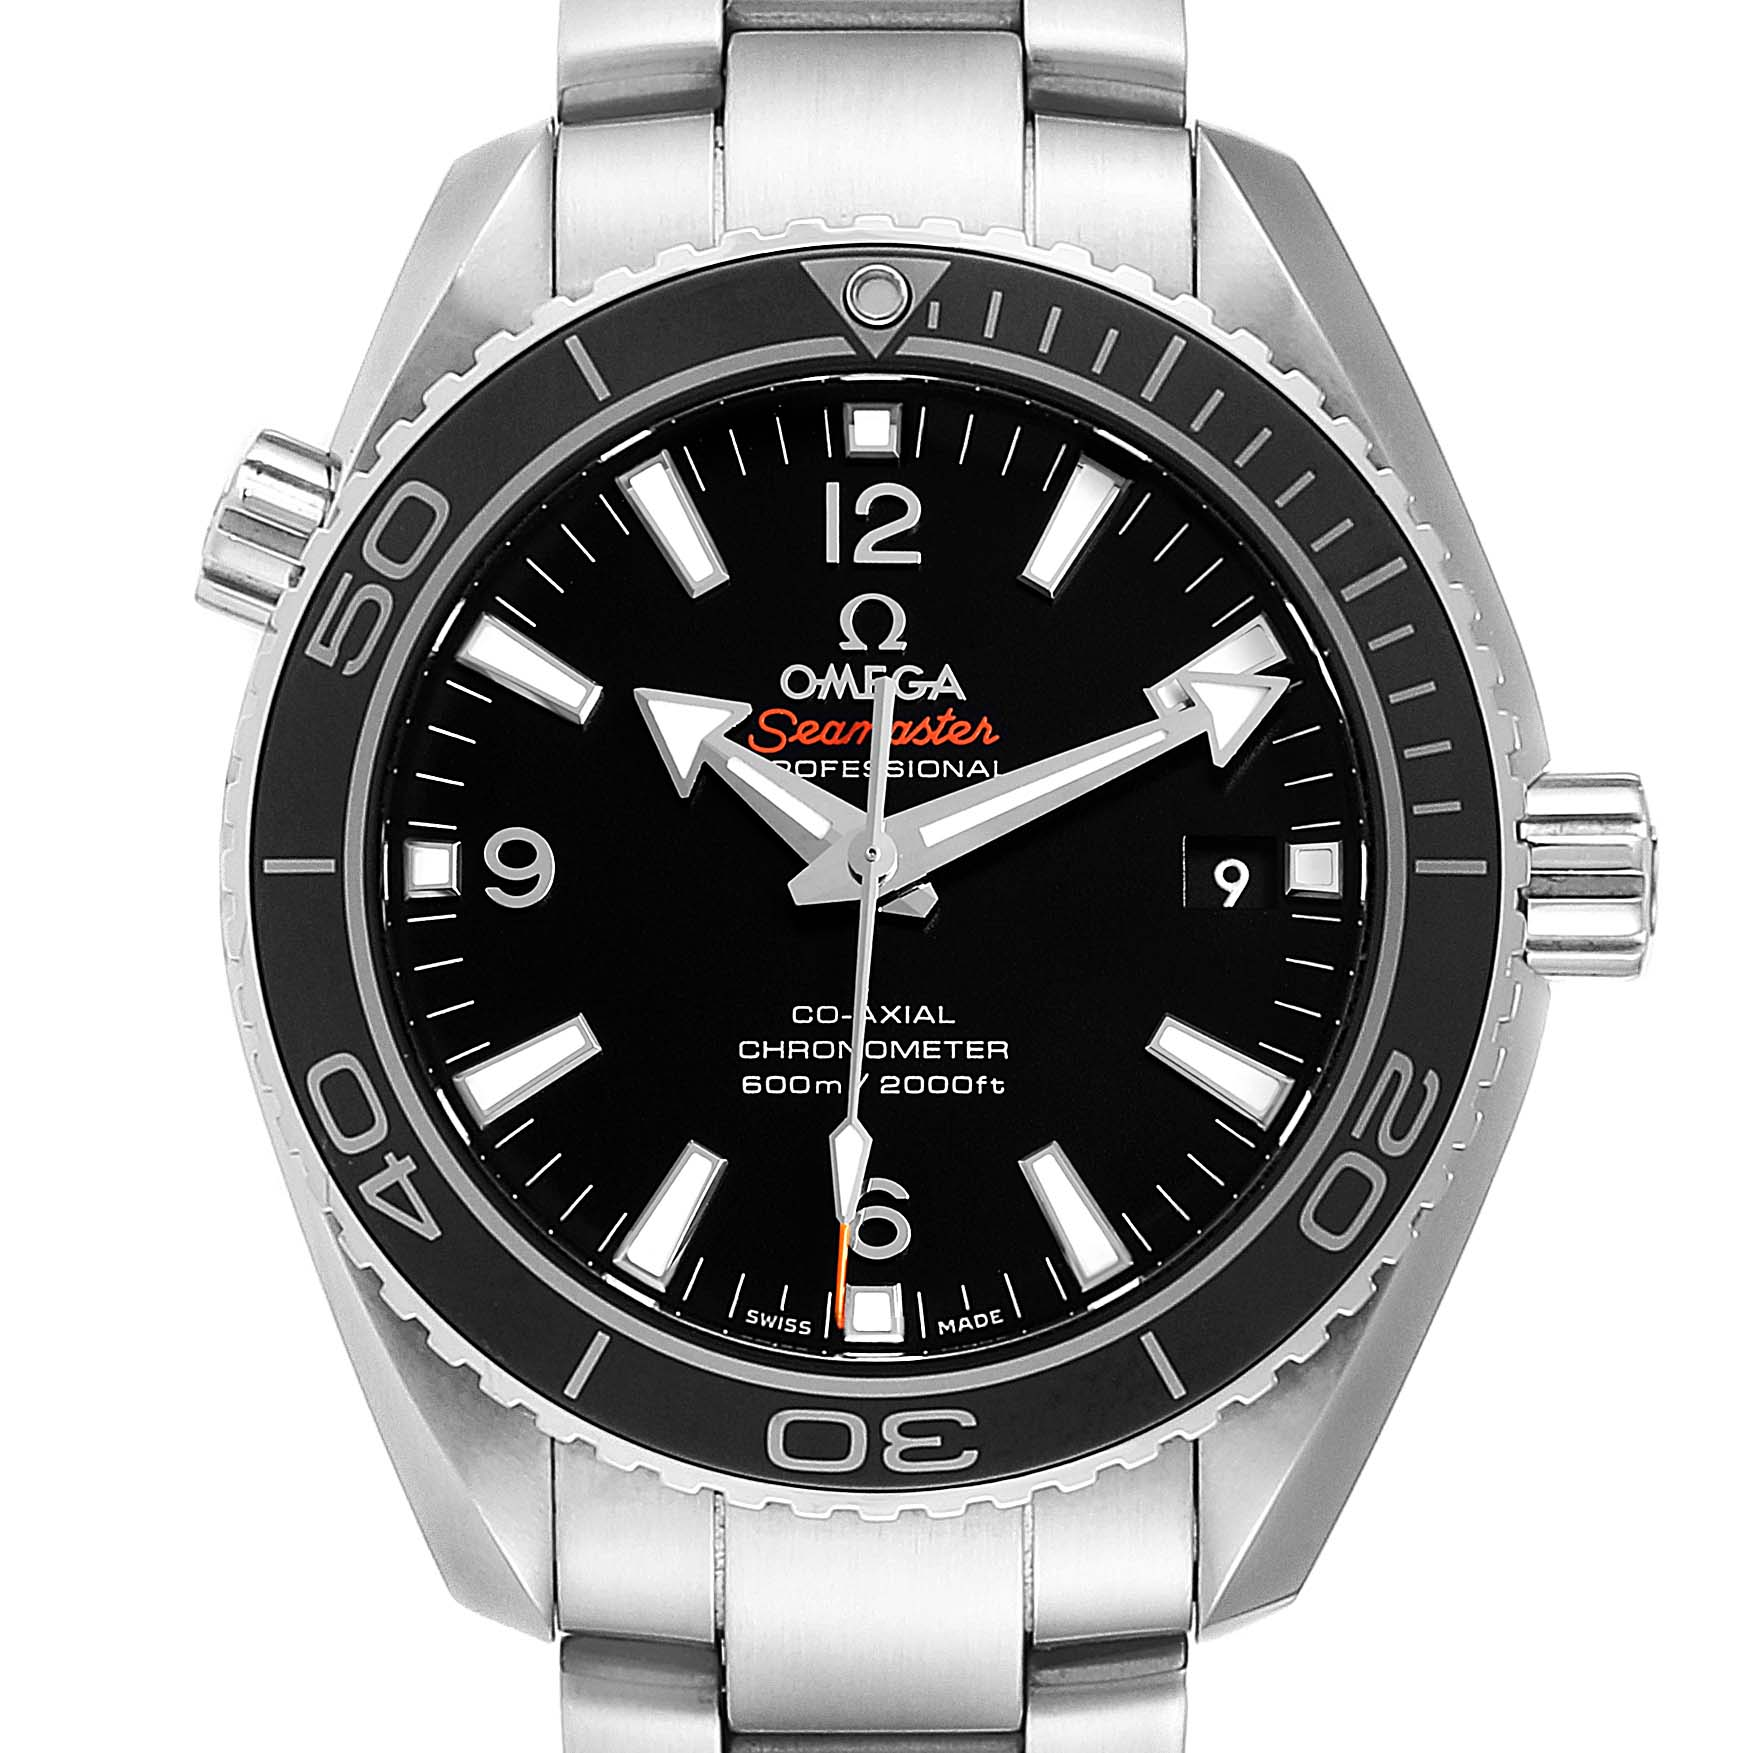 Omega Seamaster Planet Ocean Watch 232.30.42.21.01.001 Box Card